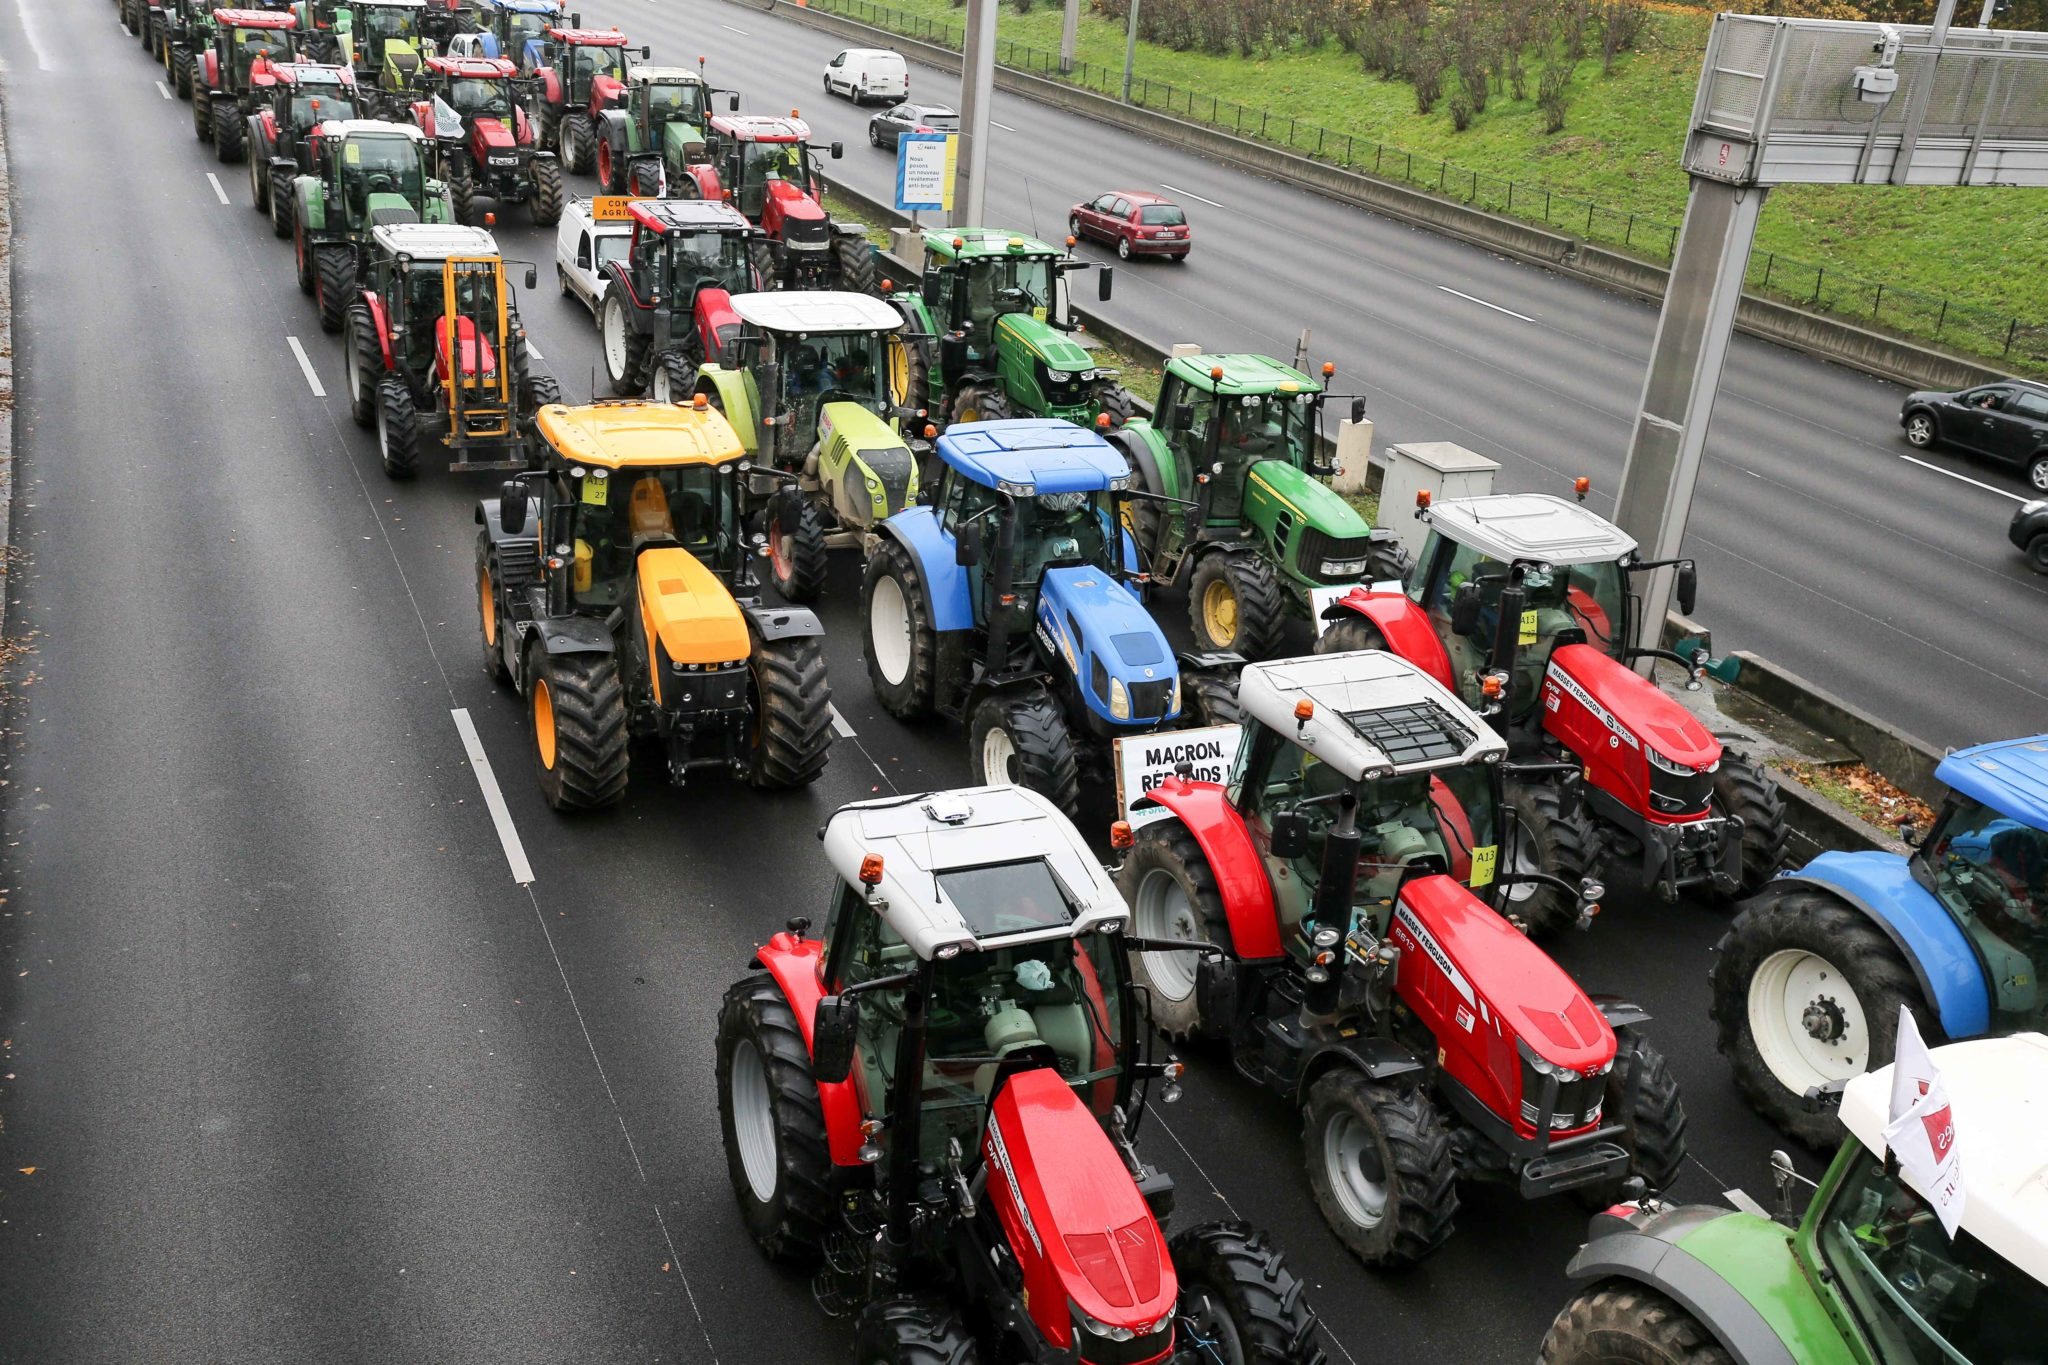 French farmers steer their tractors on The Parisian ring road (Peripherique) at Porte Dauphine in Paris on November 27, 2019, during a protest against government policies. Hundreds of French farmers descended on Paris by tractor to protest the struggles of